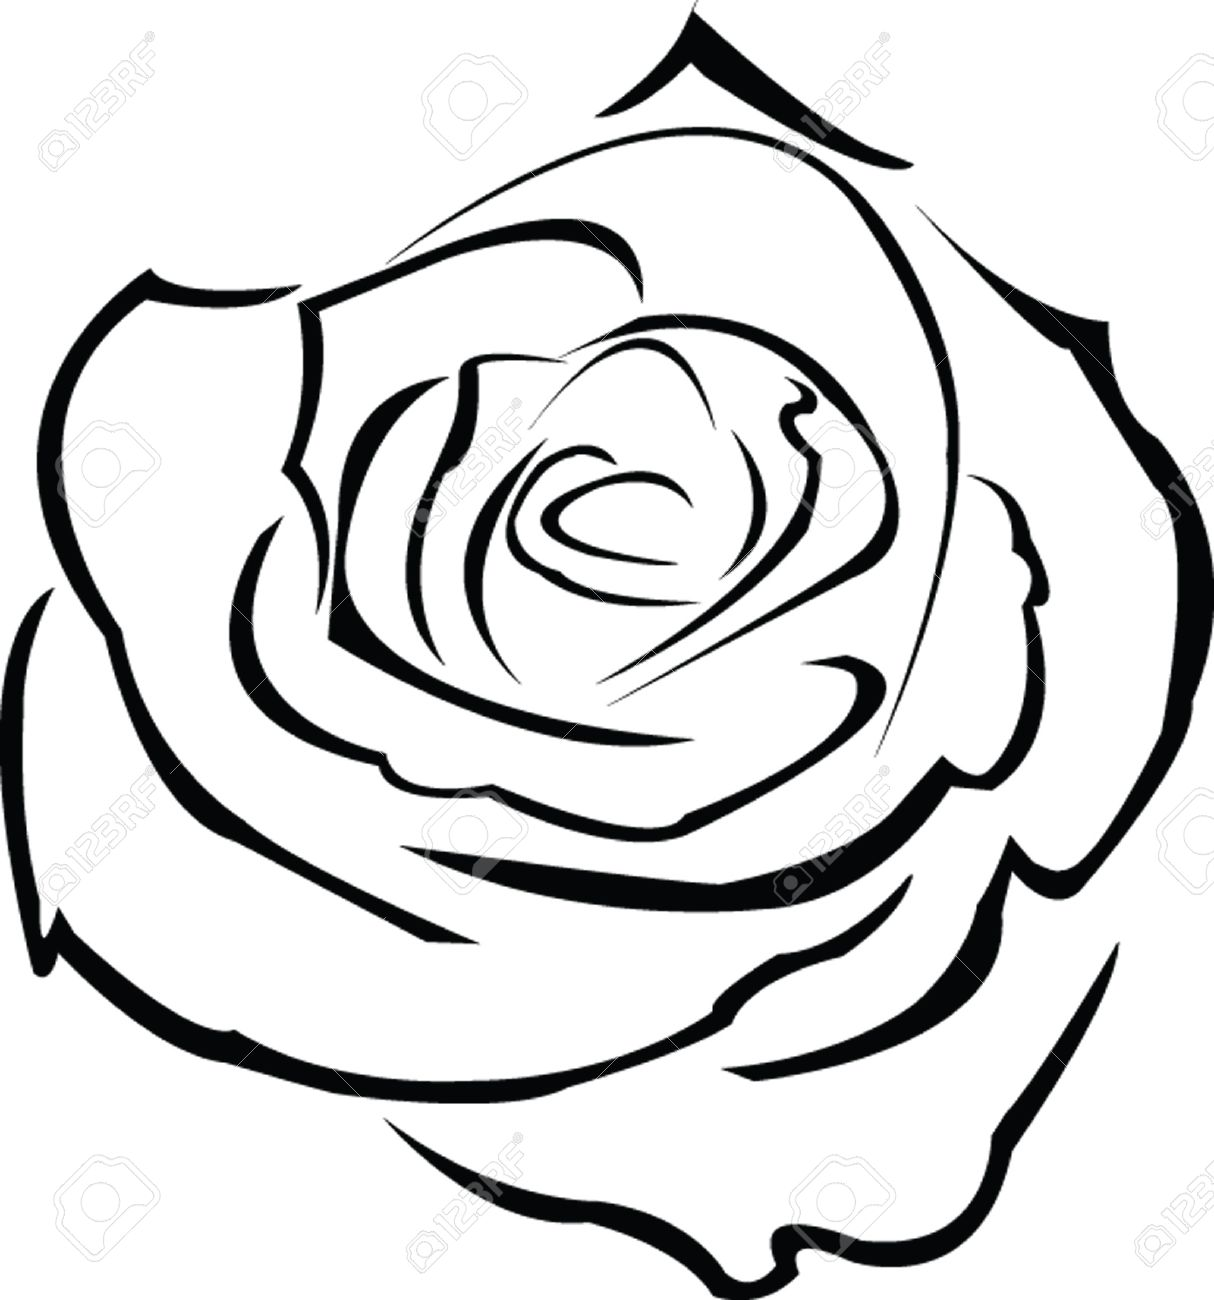 1214x1300 Drawn Red Rose Thorn Clipart